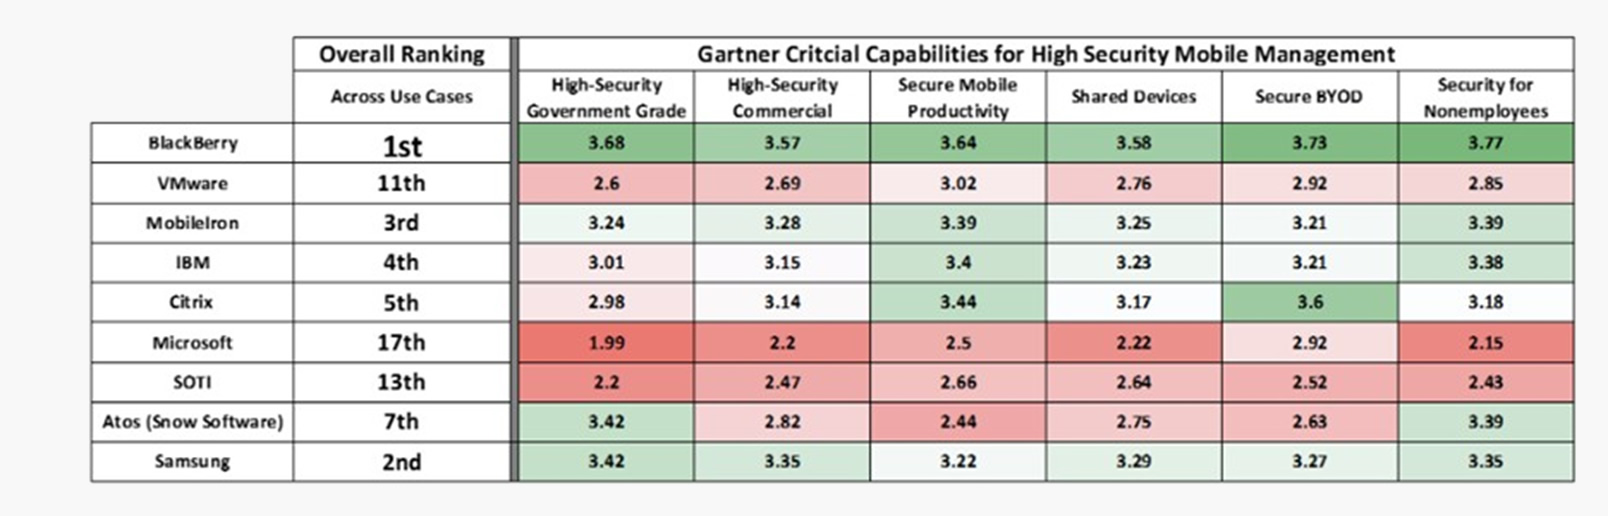 quadro-gartner-blackberry-leader-mdm